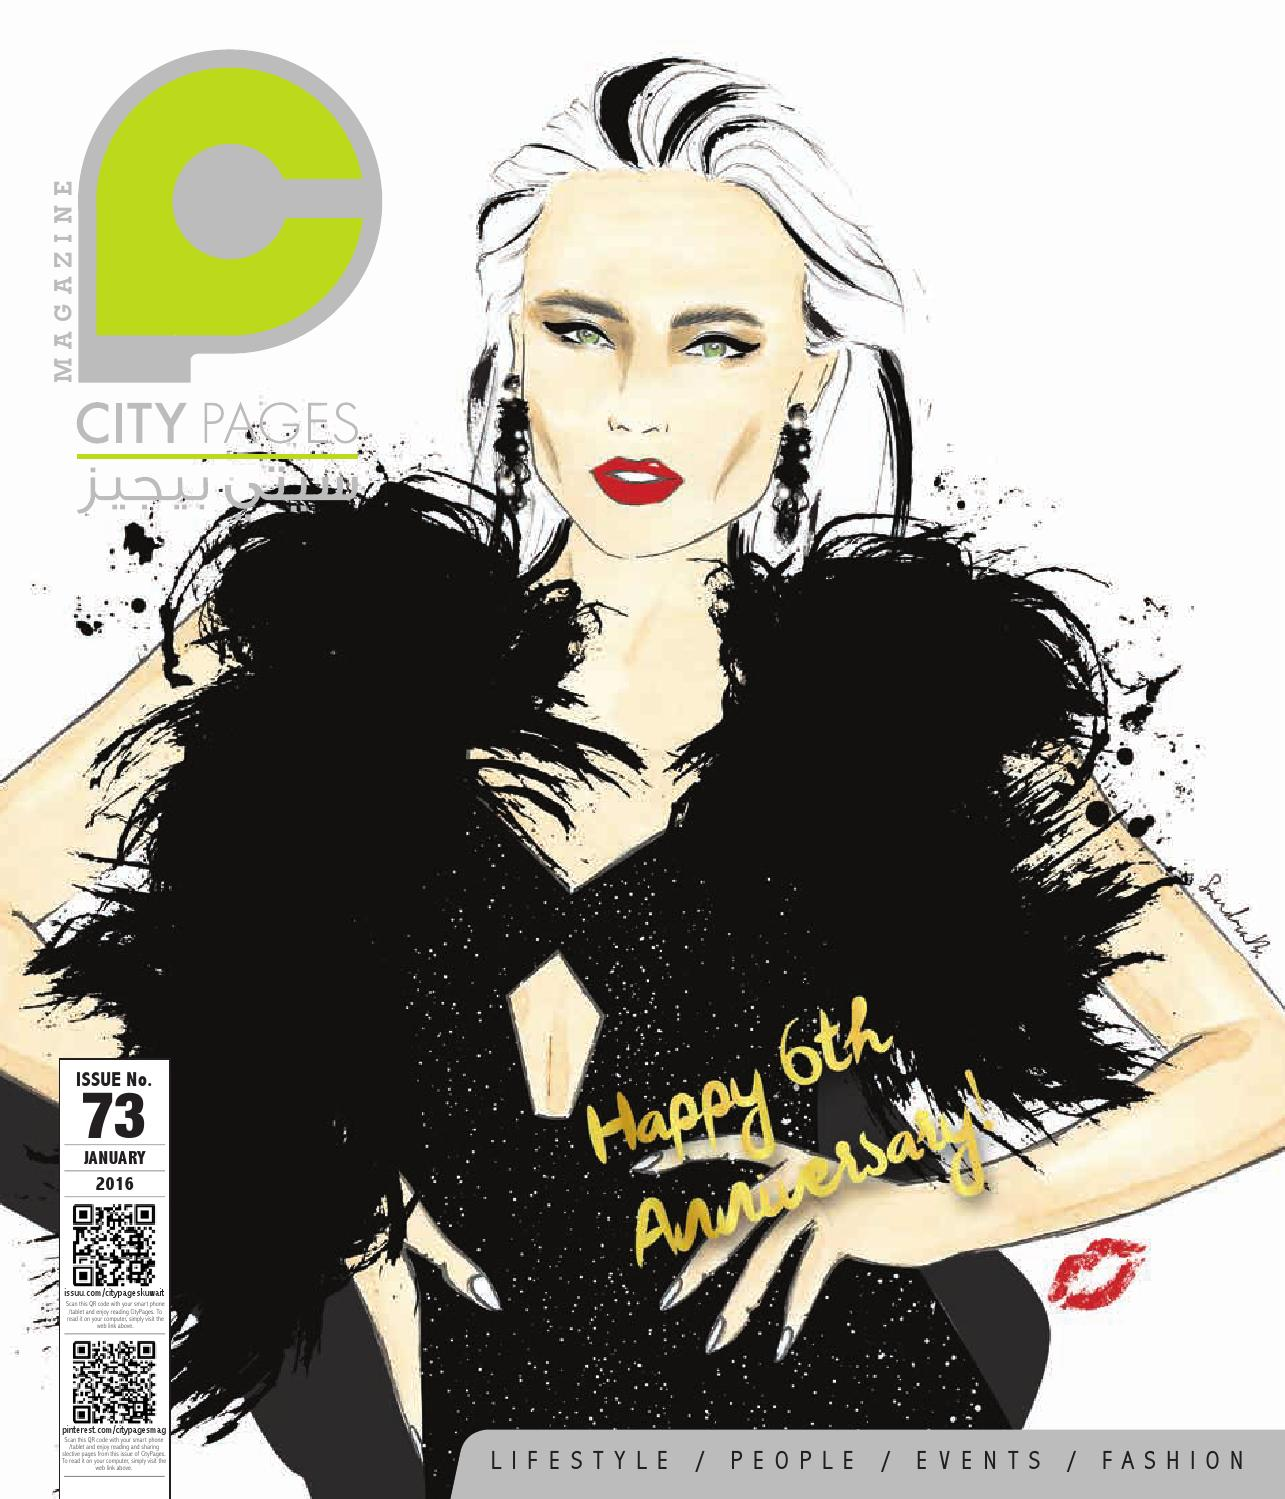 d3ff1747fbe8e CityPages January 2016 by CityPages Kuwait - issuu